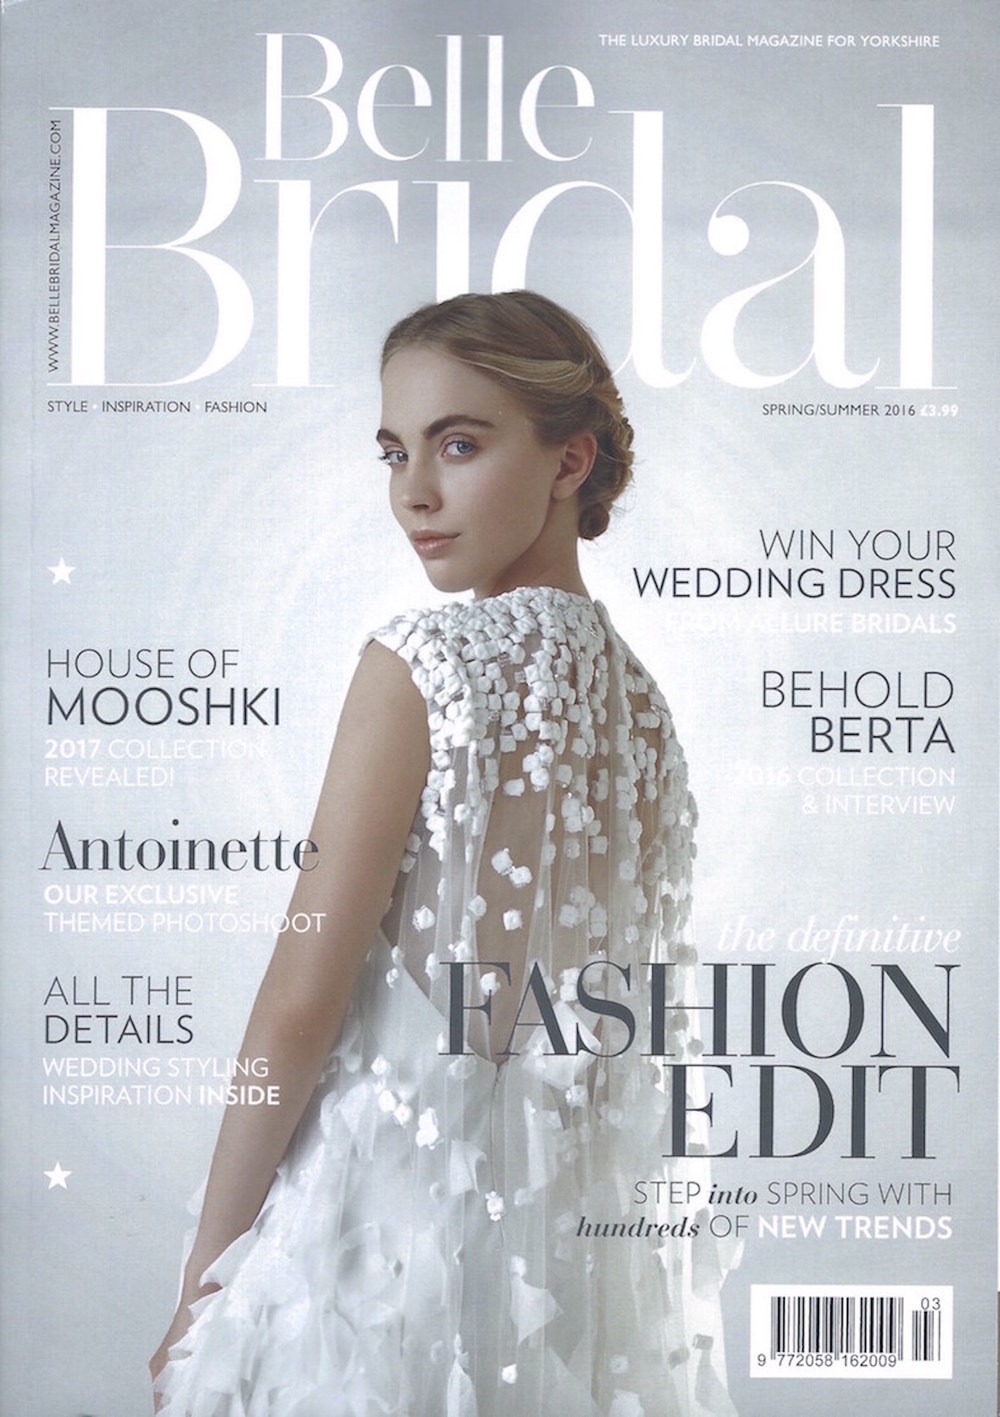 Belle Bridal Magazine Spring Summer 2016 Yorkshire Front Cover.jpeg